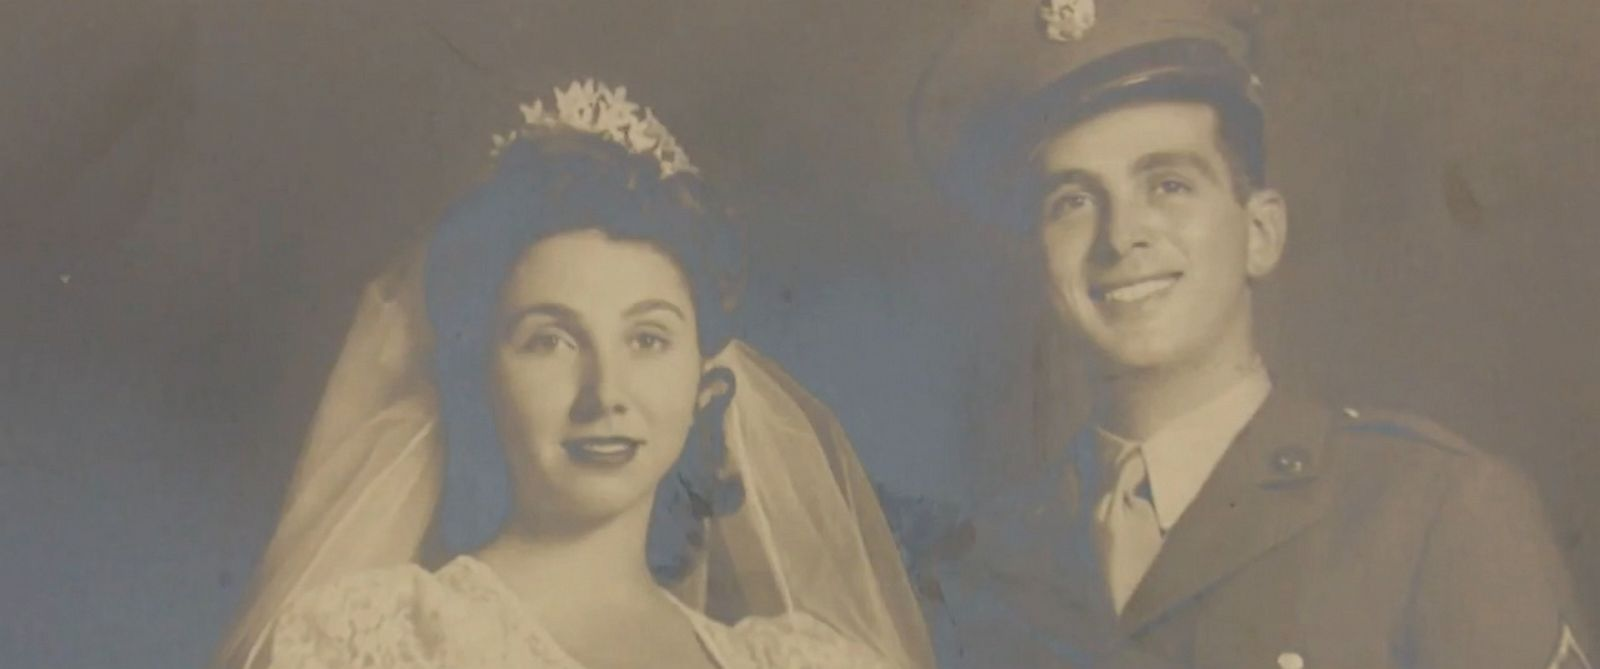 VIDEO: Emmy Ordonez and her family are hoping to find the owners of a vintage wedding photo found in the garage of a home they rent in Dallas.